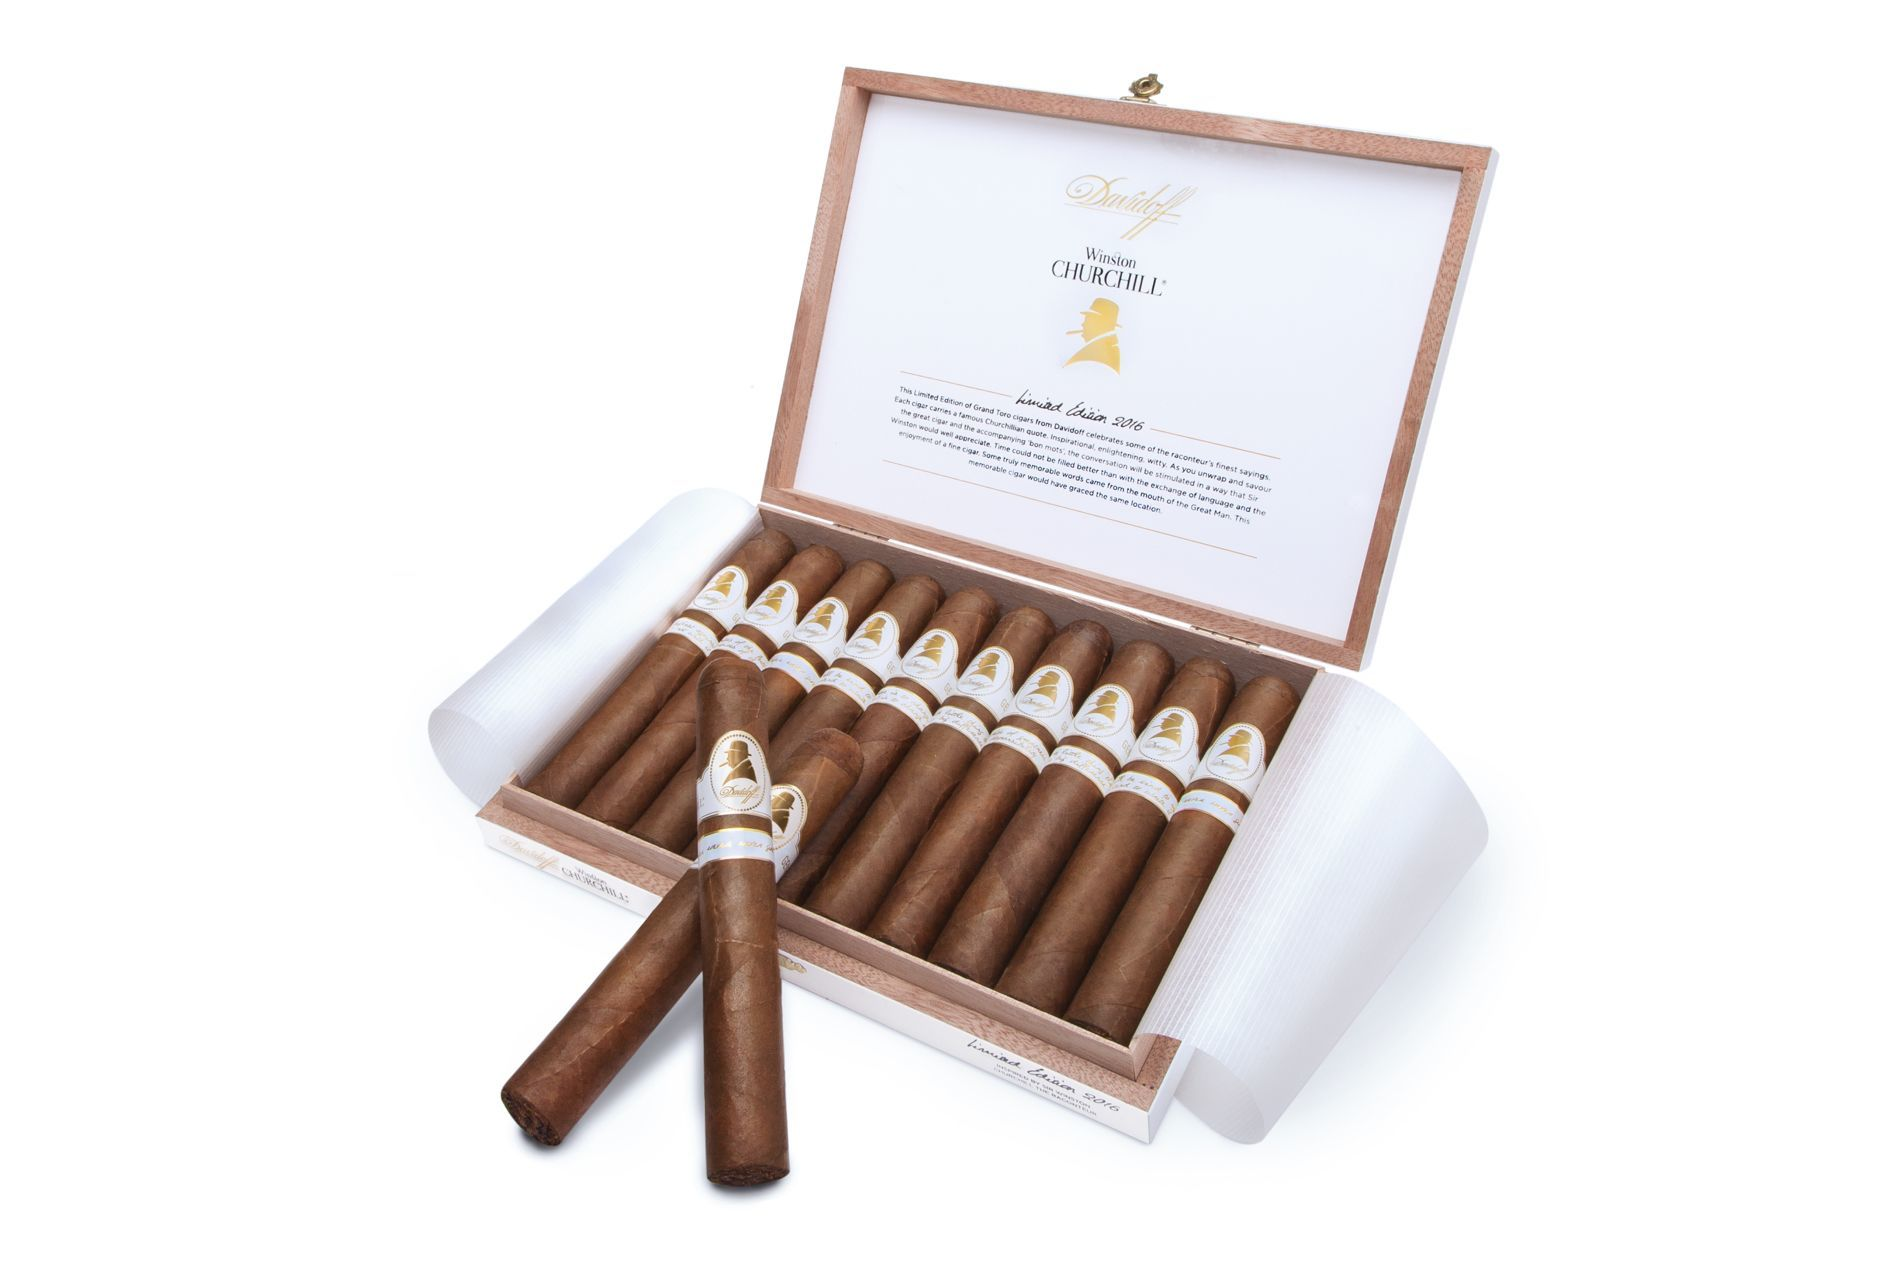 Winston Churchill Limited Edition 2016 - Boxes